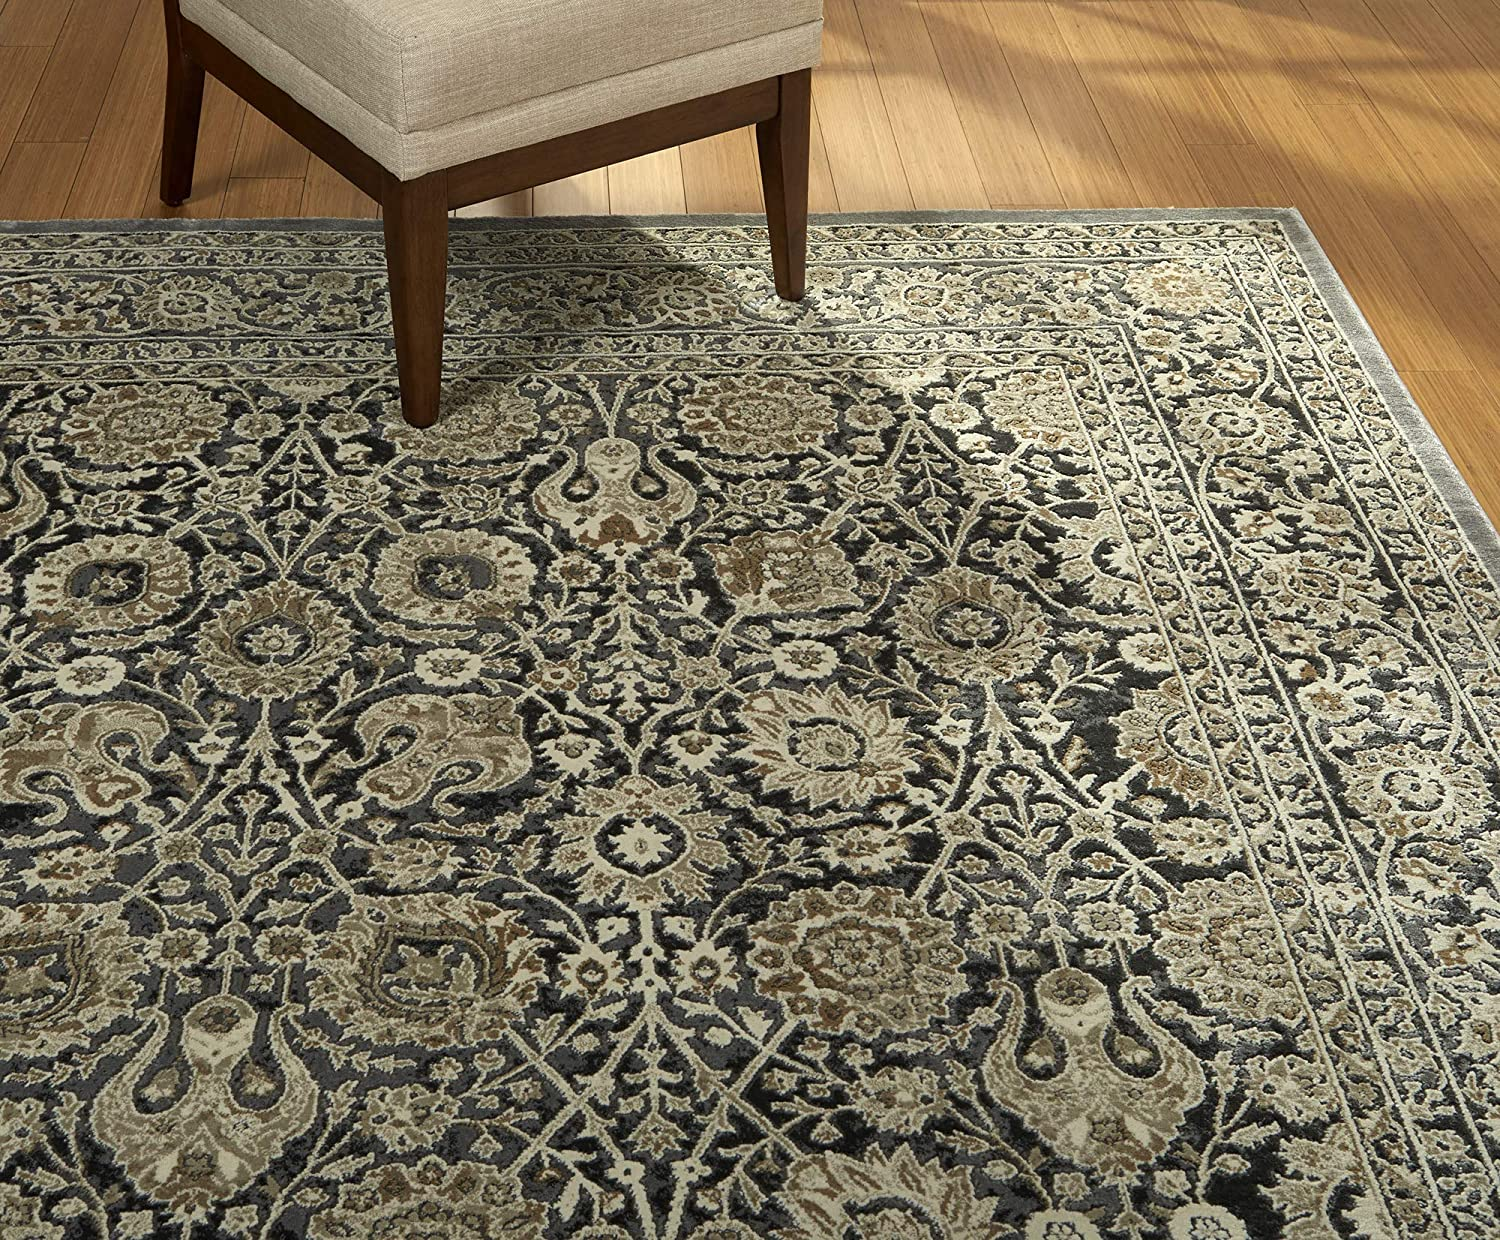 Gertmenian Limited Special Price Oriental Rug VIII Traditional x Carpet 8' Quality inspection Persian 10